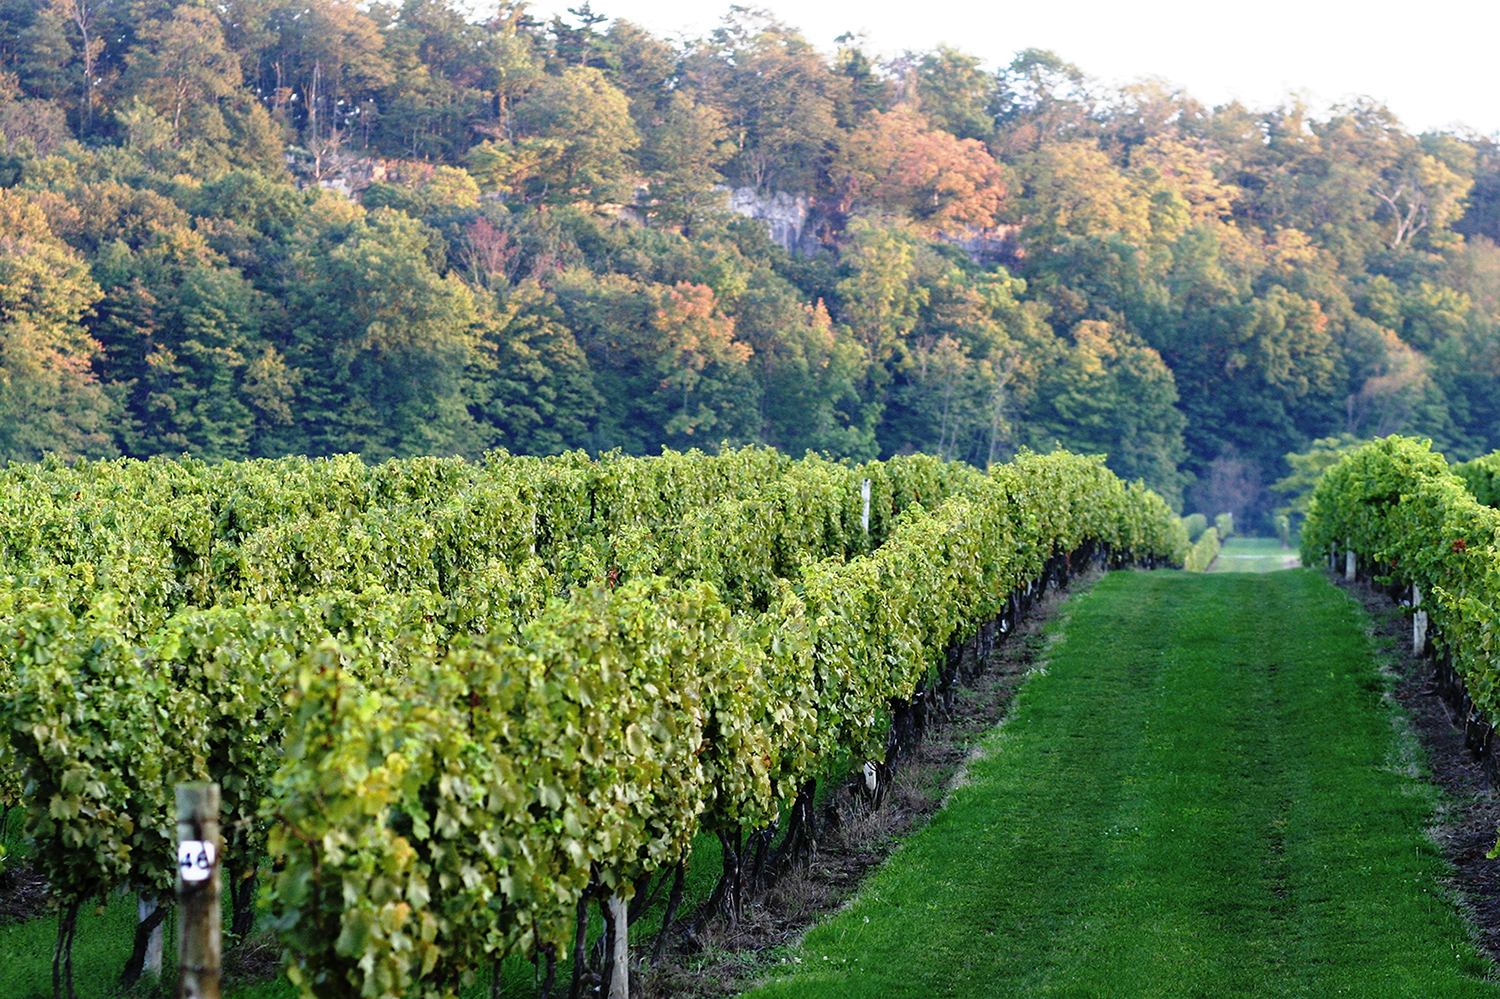 Vineyard with the Niagara Escarpment in the background.